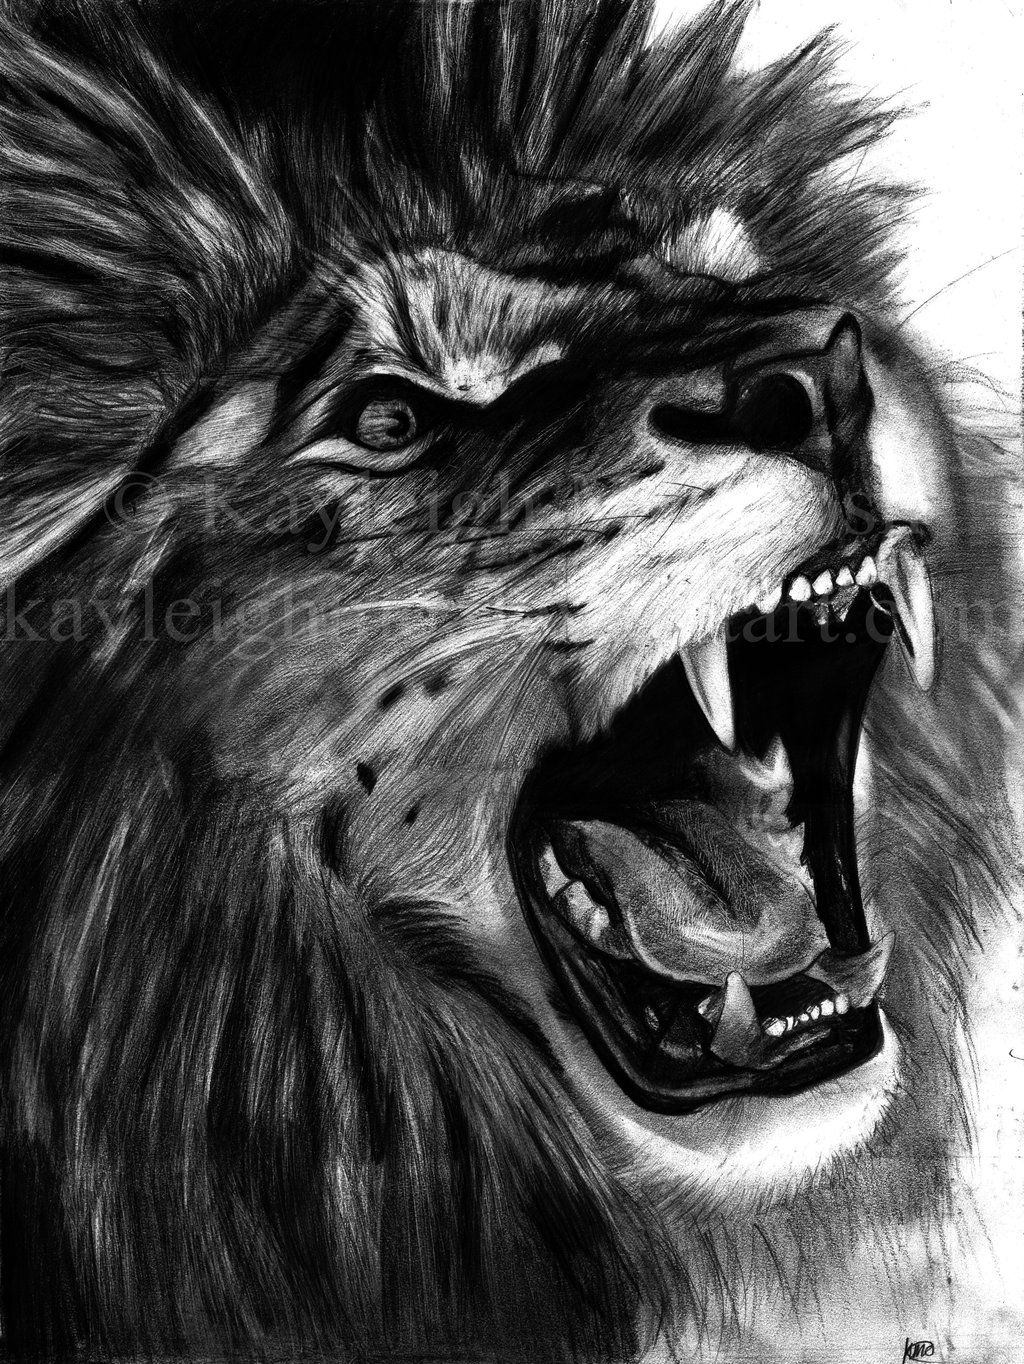 Angry Lion By Kayleighmc D64ws0a Jpg 1024 1364 Lion Drawing Lion Sketch Lion Lion face outlined front svg. lion drawing lion sketch